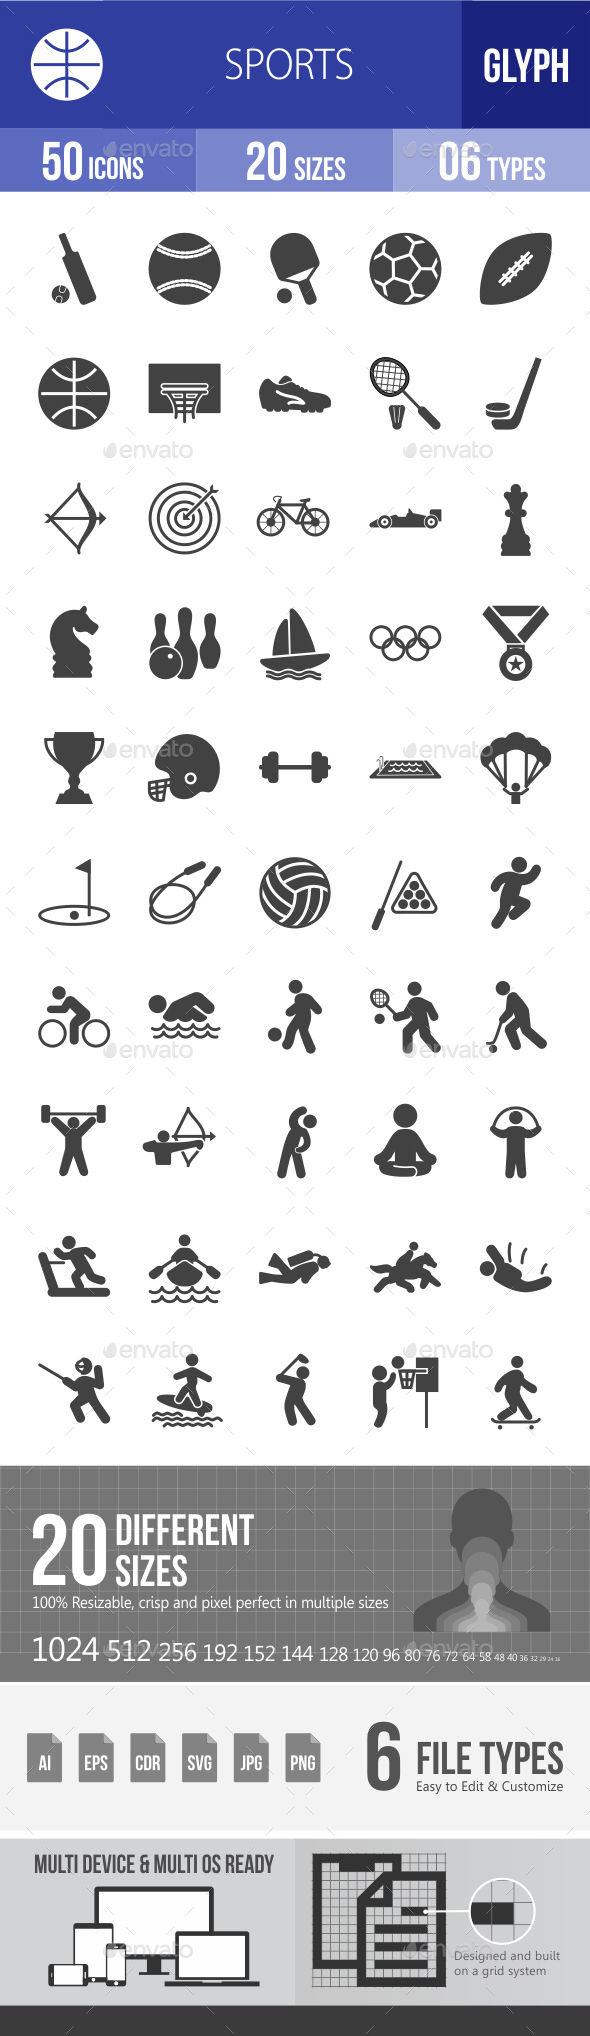 Sports Glyph Icons - Icons